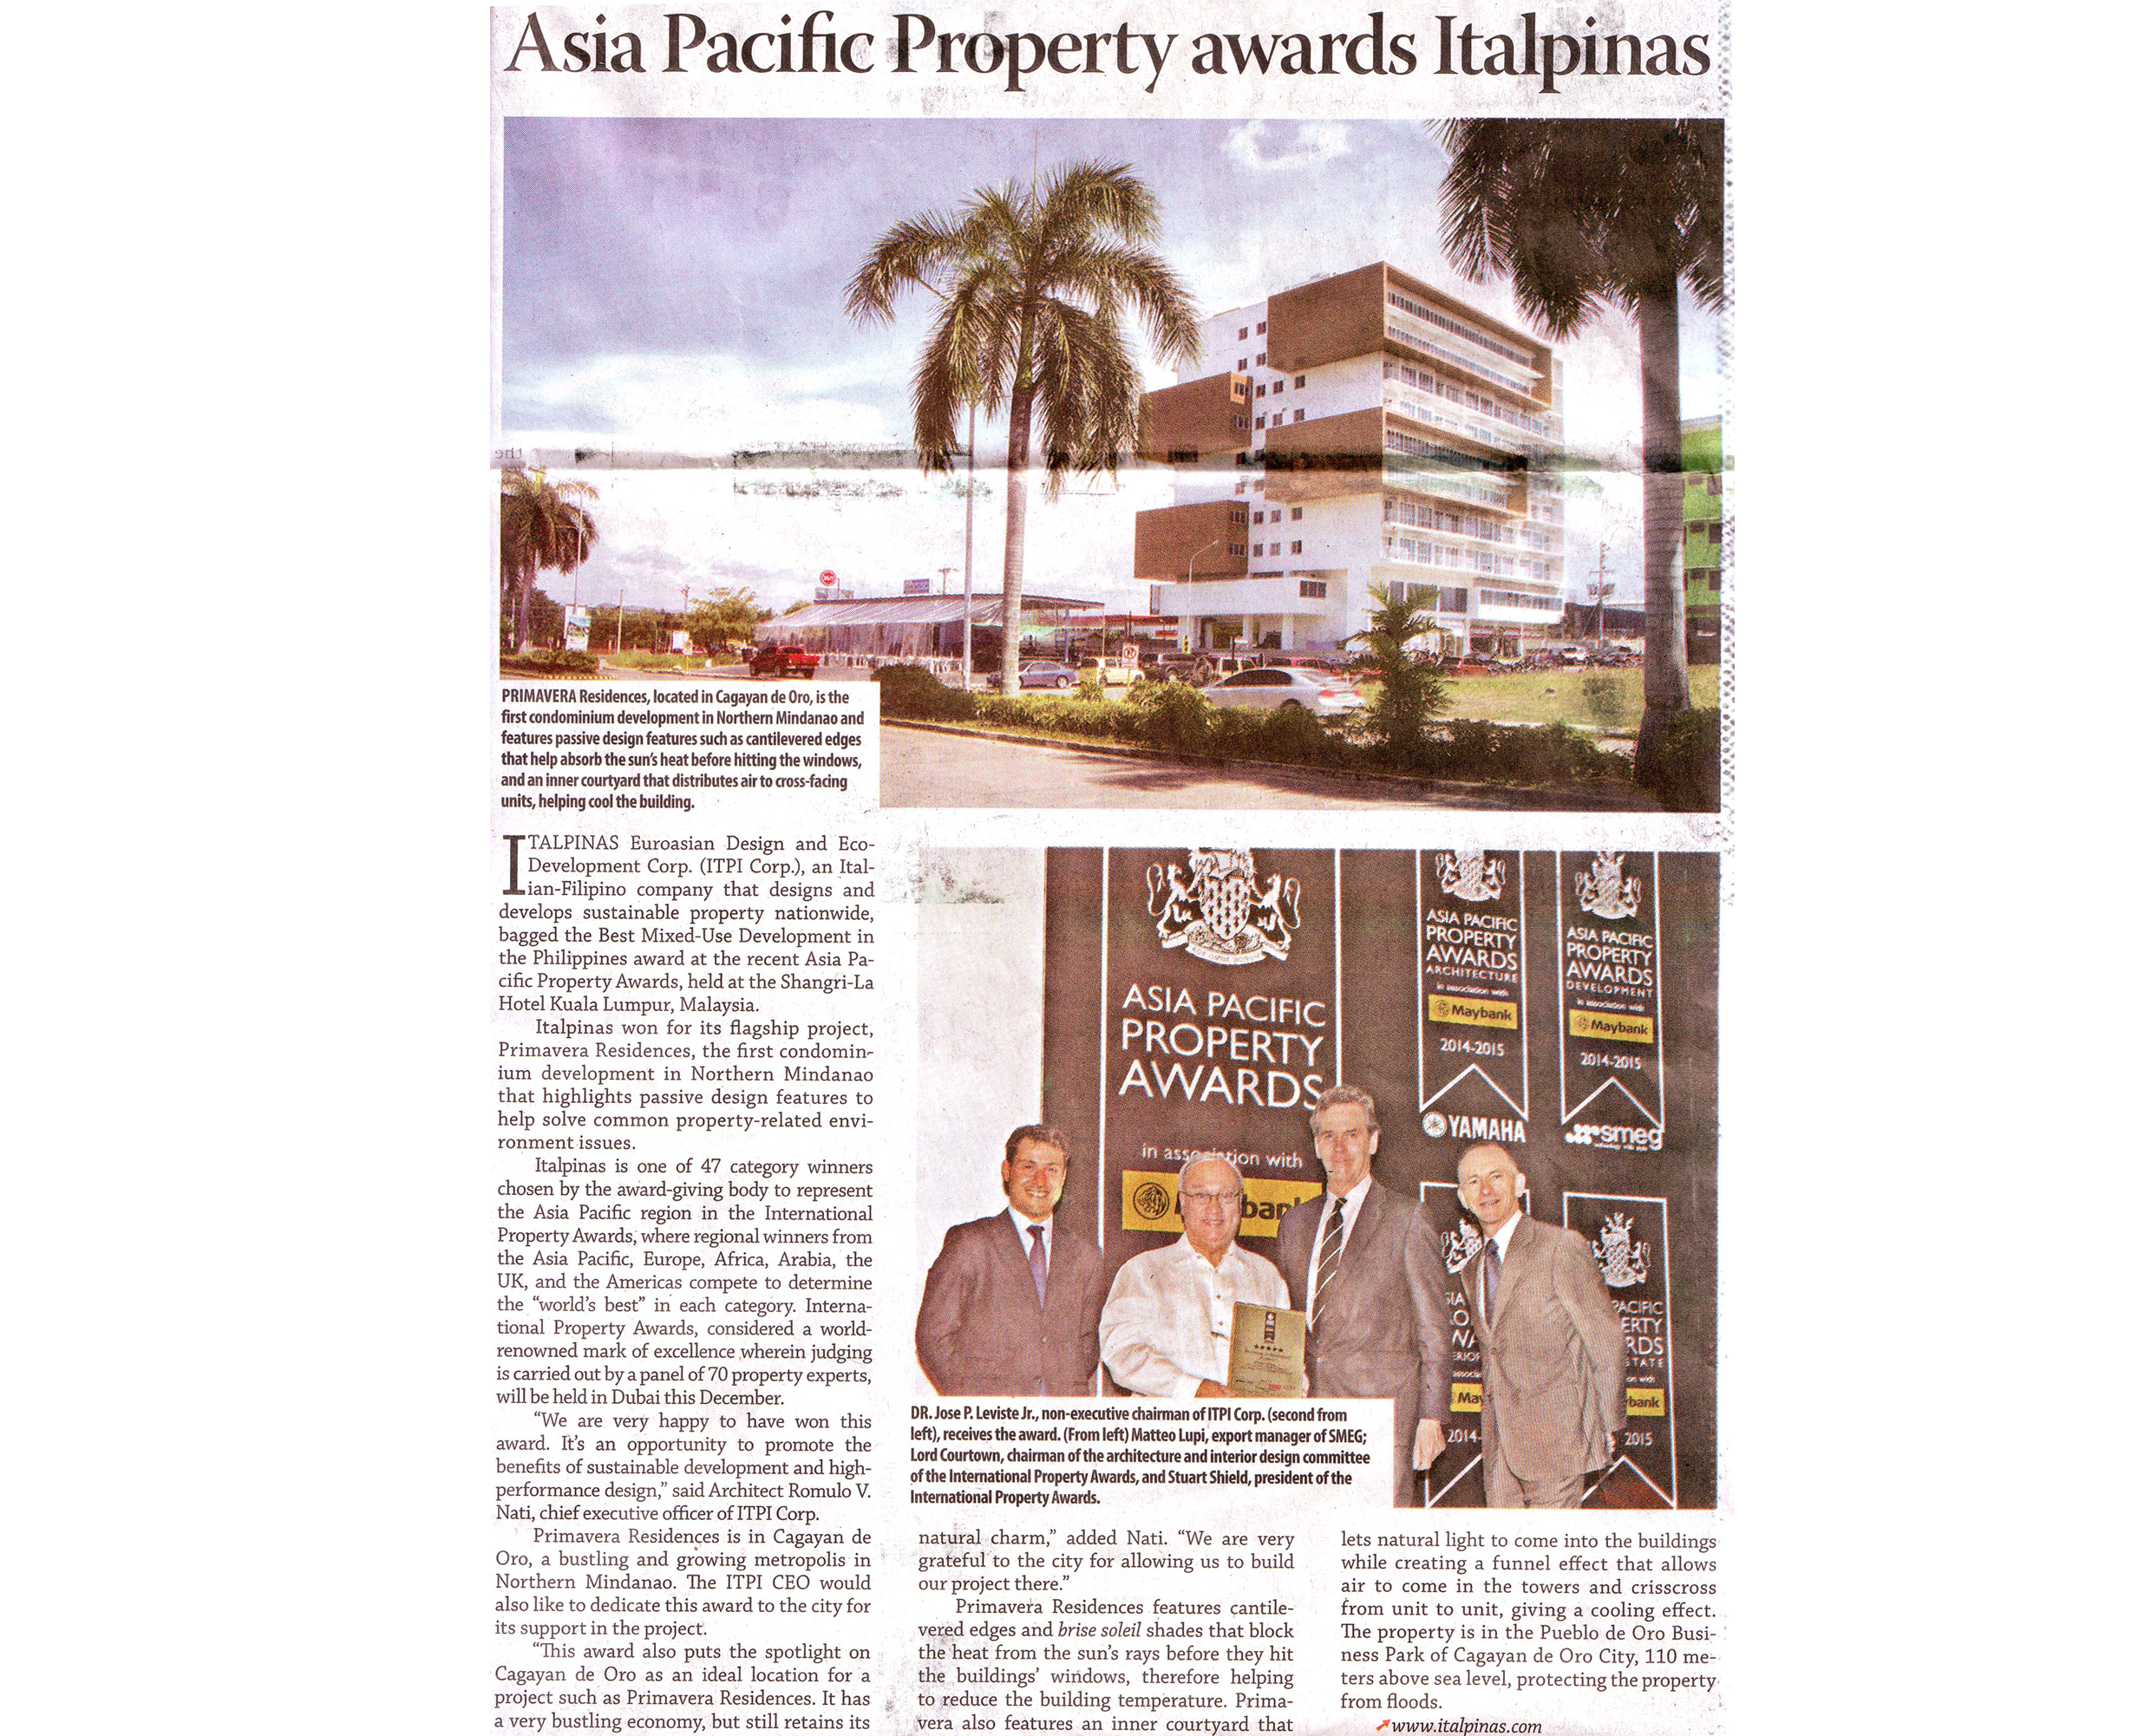 ITALPINAS,June42014,ItalpinasWins PropertyAwards,BusinessMirror